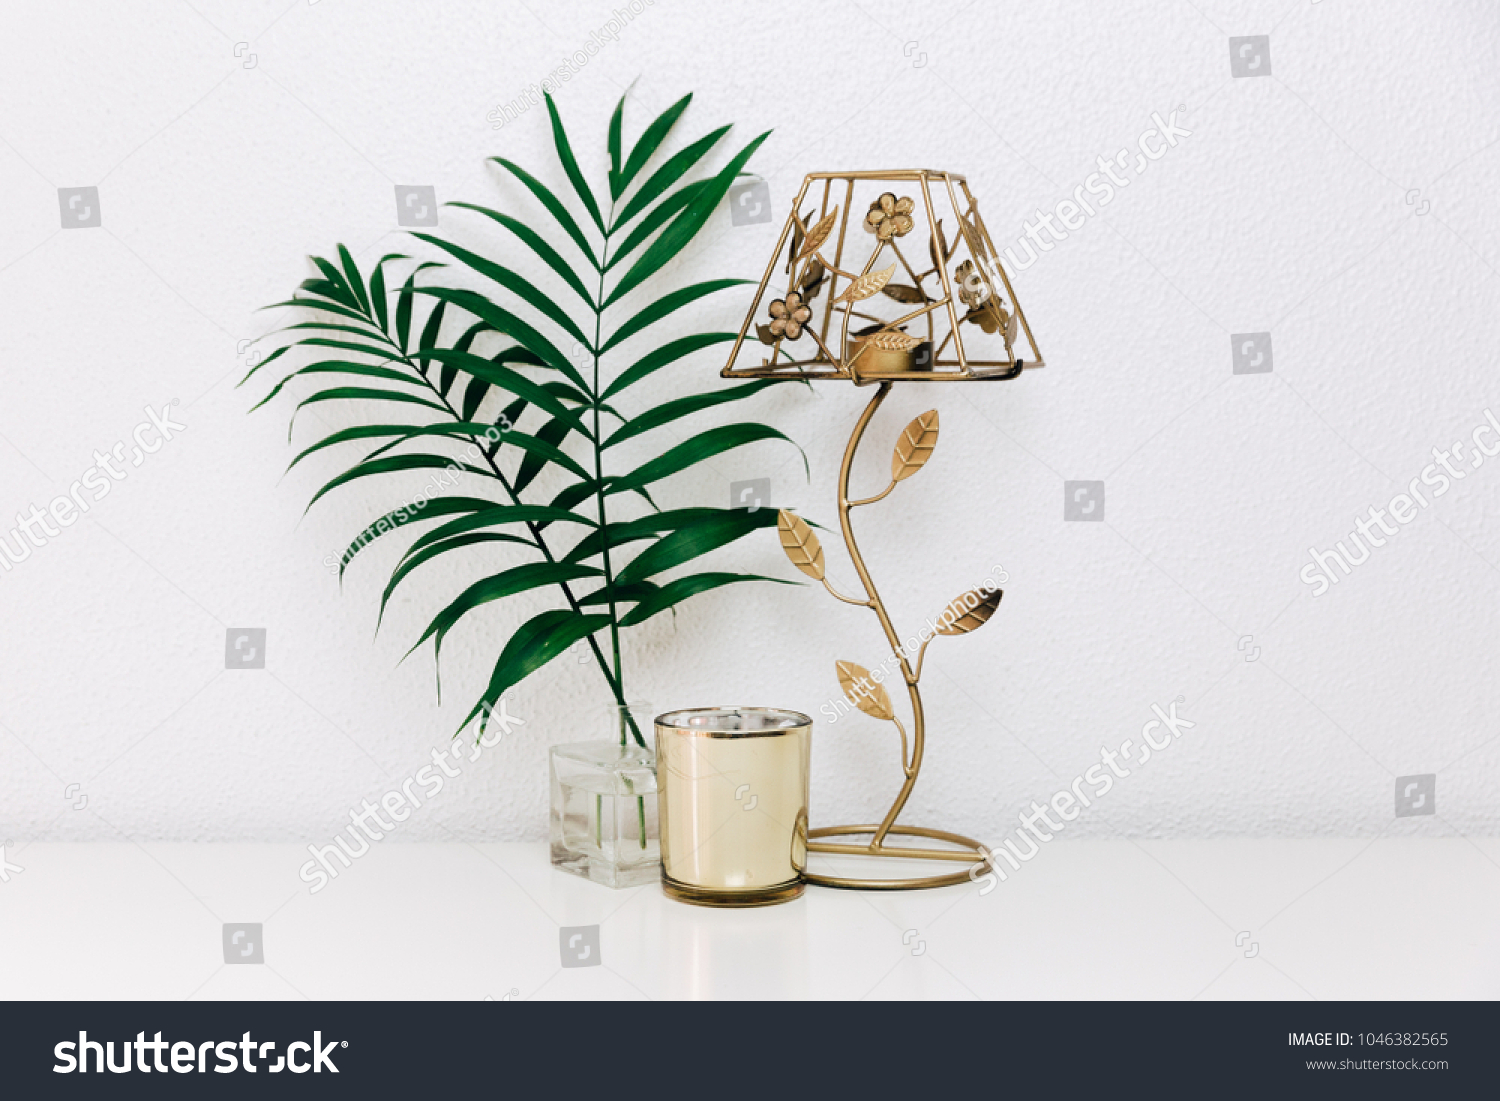 Chrysalidocarpus Space For Life Clean Eco Home Interior Decor Minimal Stock Photo Edit Now